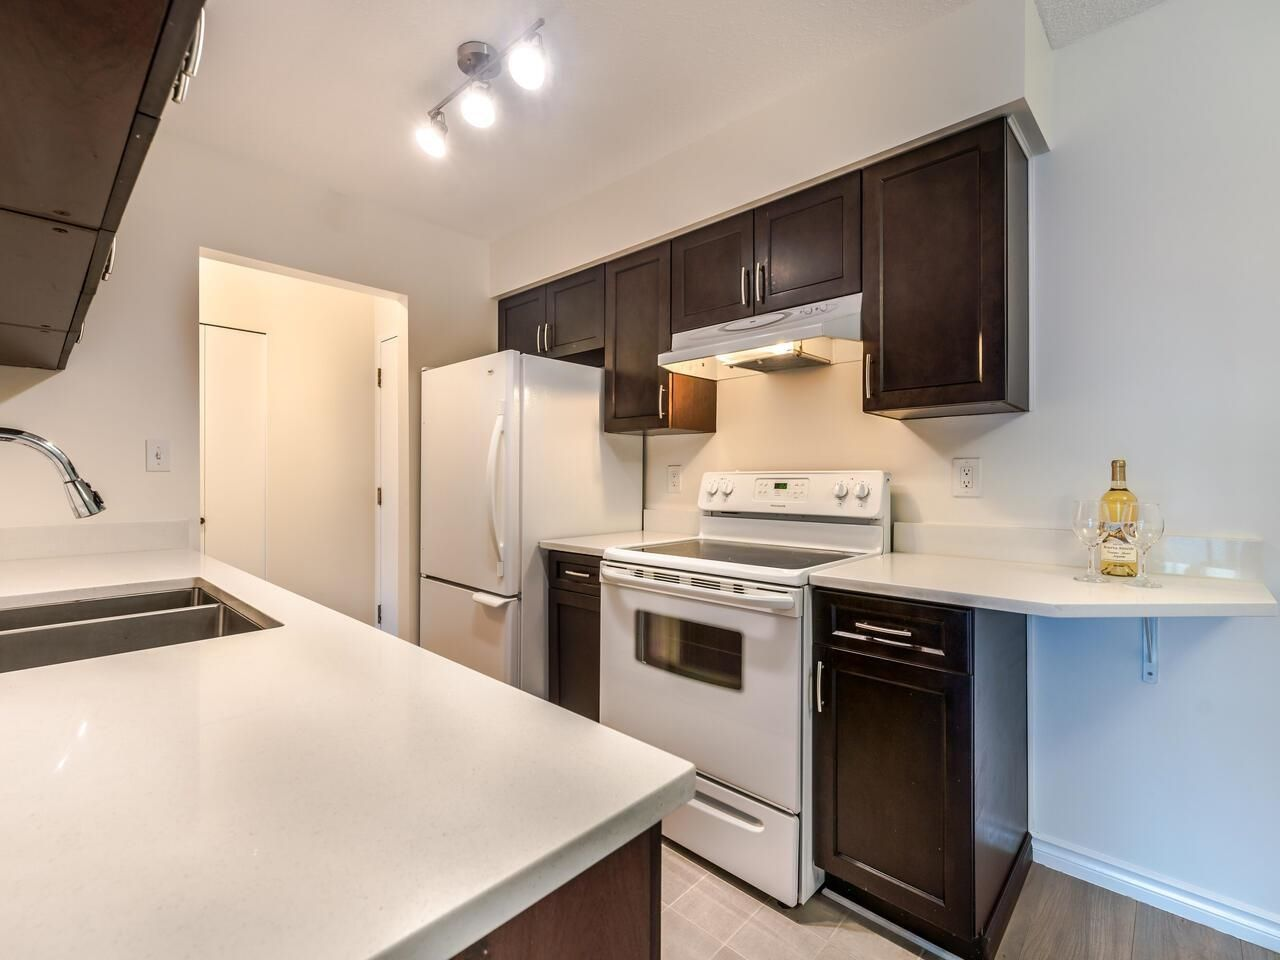 """Main Photo: 206 4373 HALIFAX Street in Burnaby: Brentwood Park Condo for sale in """"BRENT GARDENS"""" (Burnaby North)  : MLS®# R2622394"""